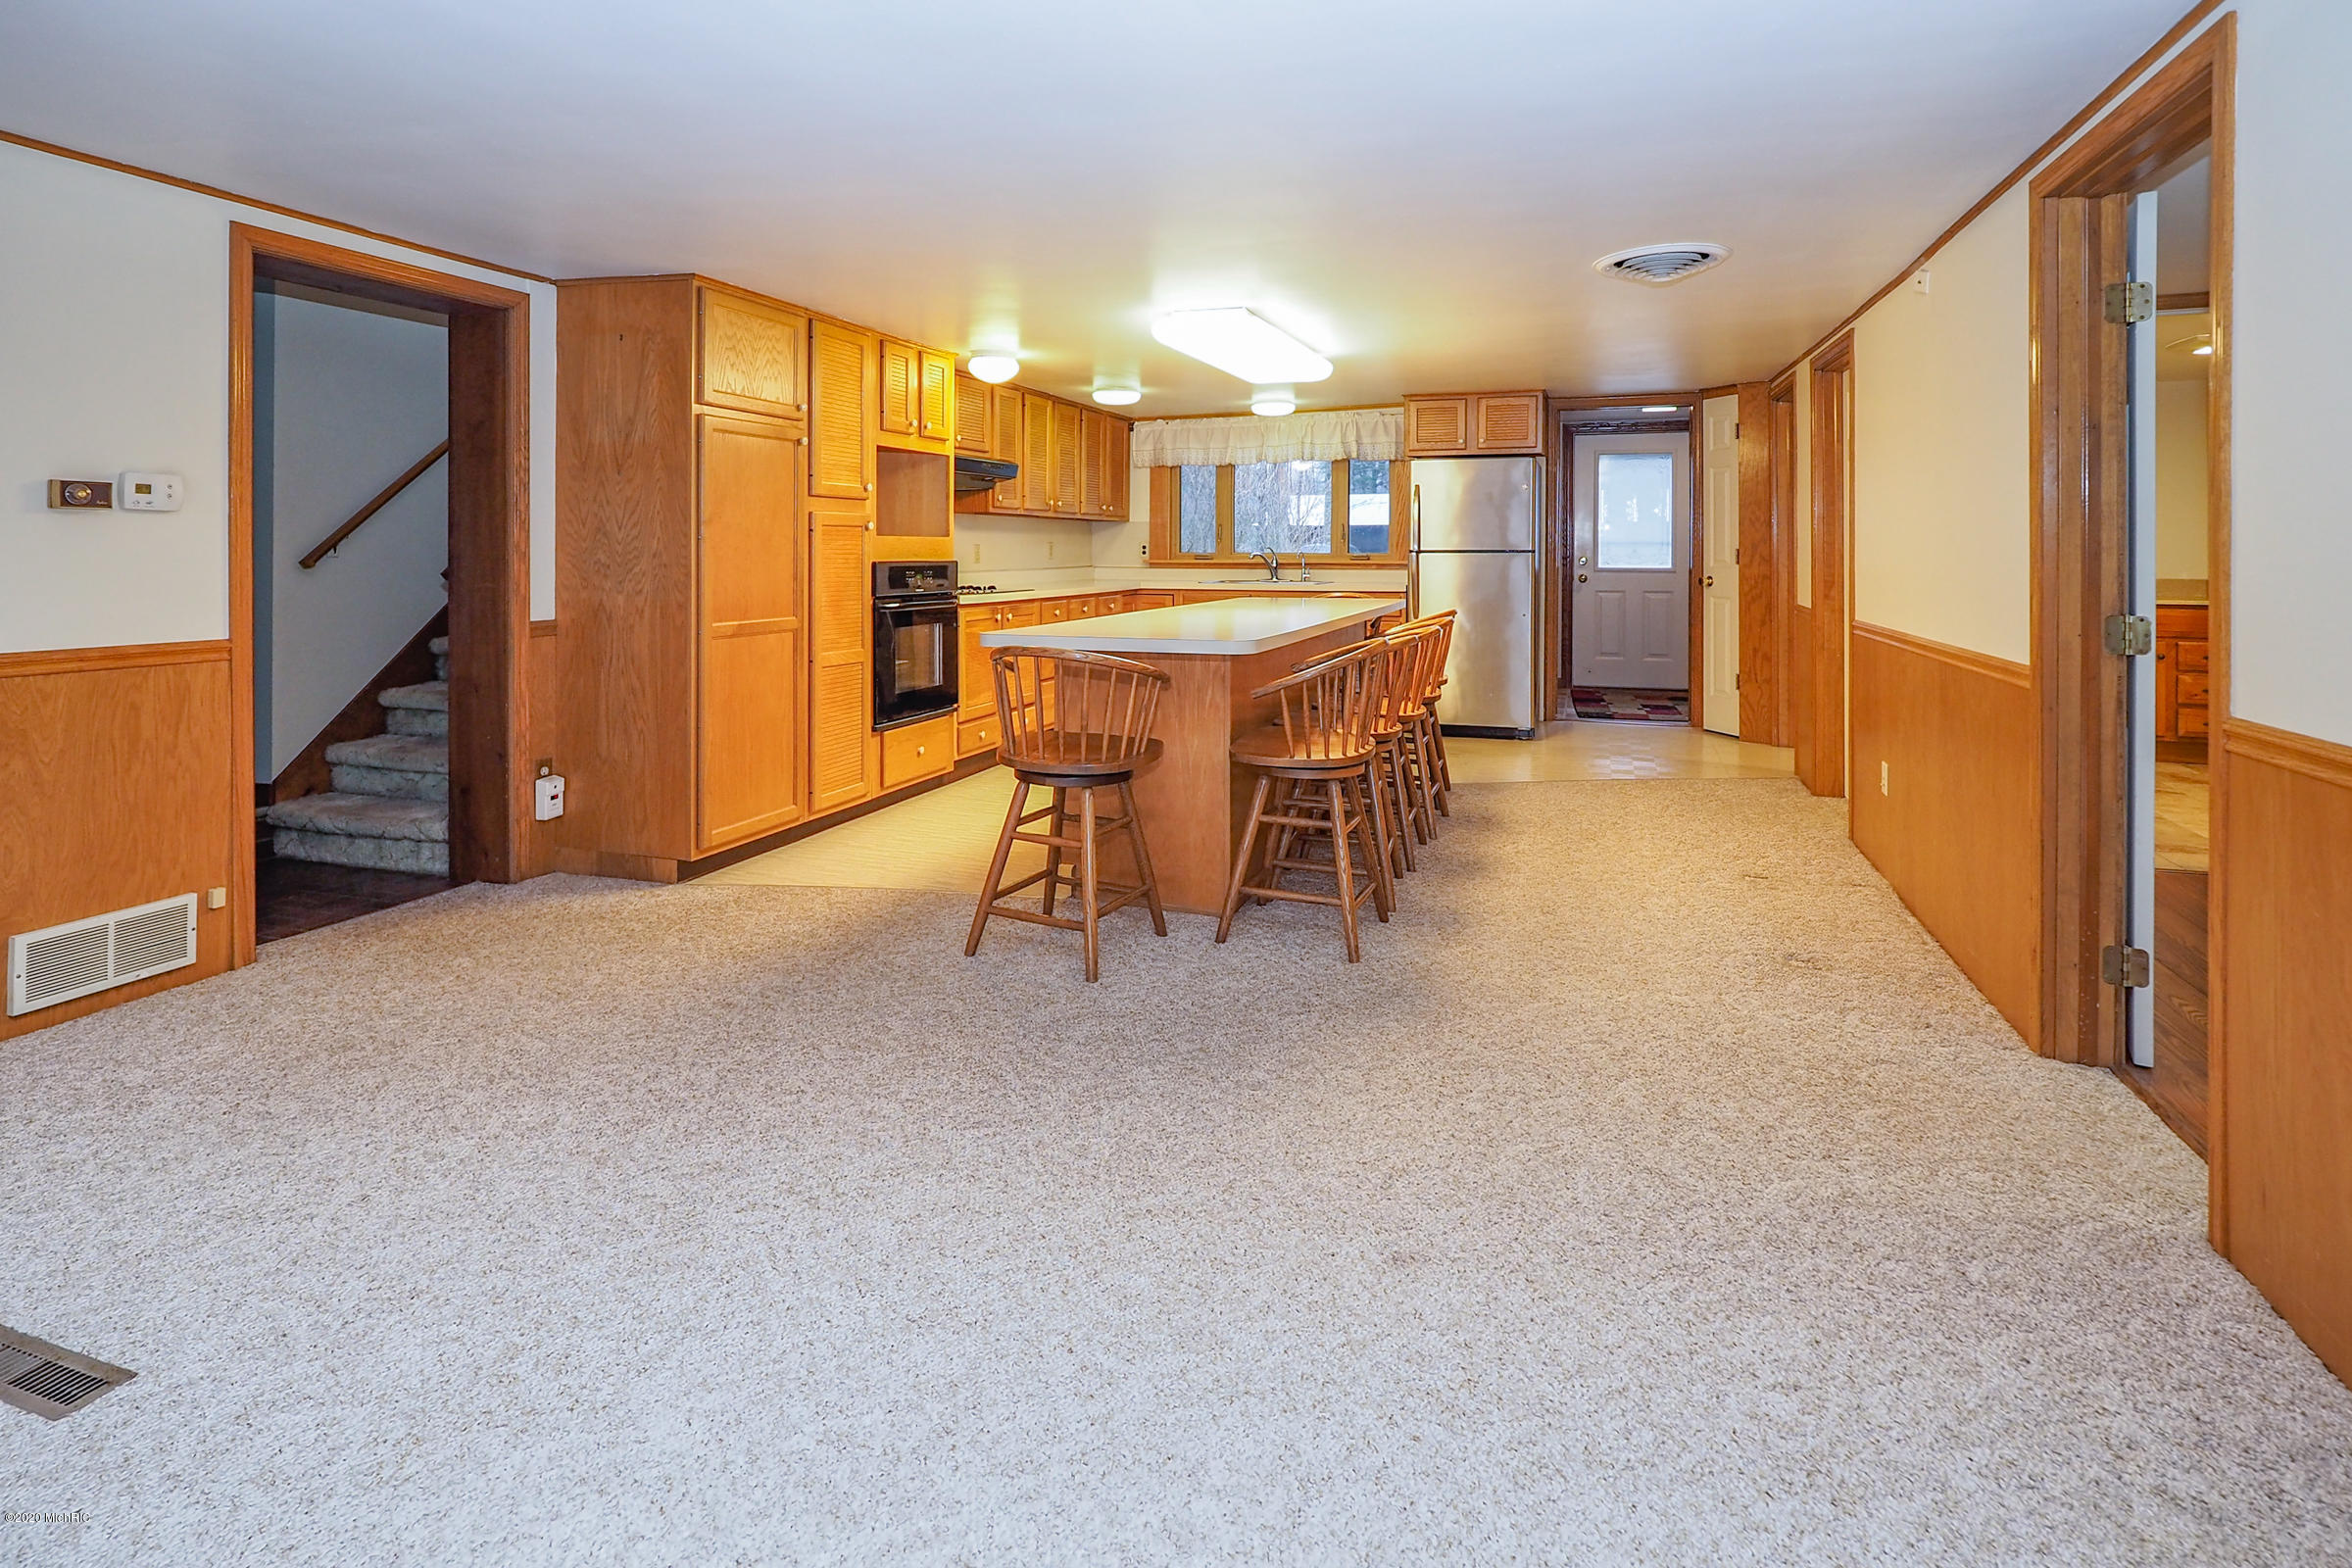 27357 2nd , Allegan, MI 49010 Photo 46